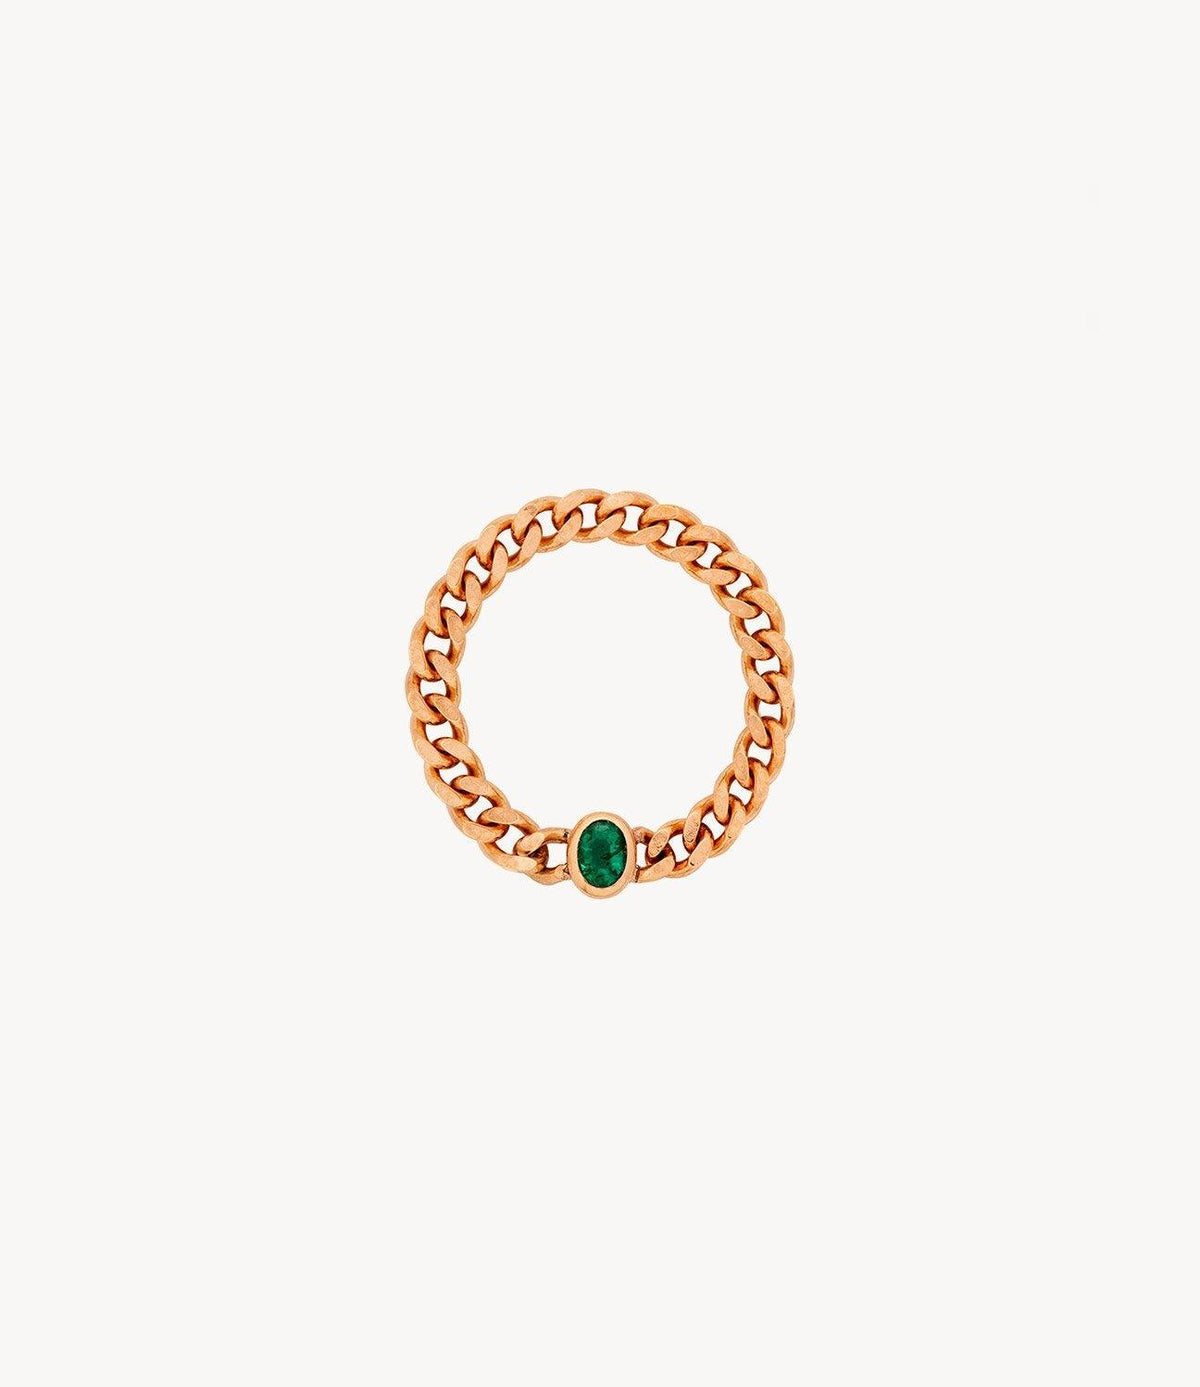 Green Emerald Chain Ring